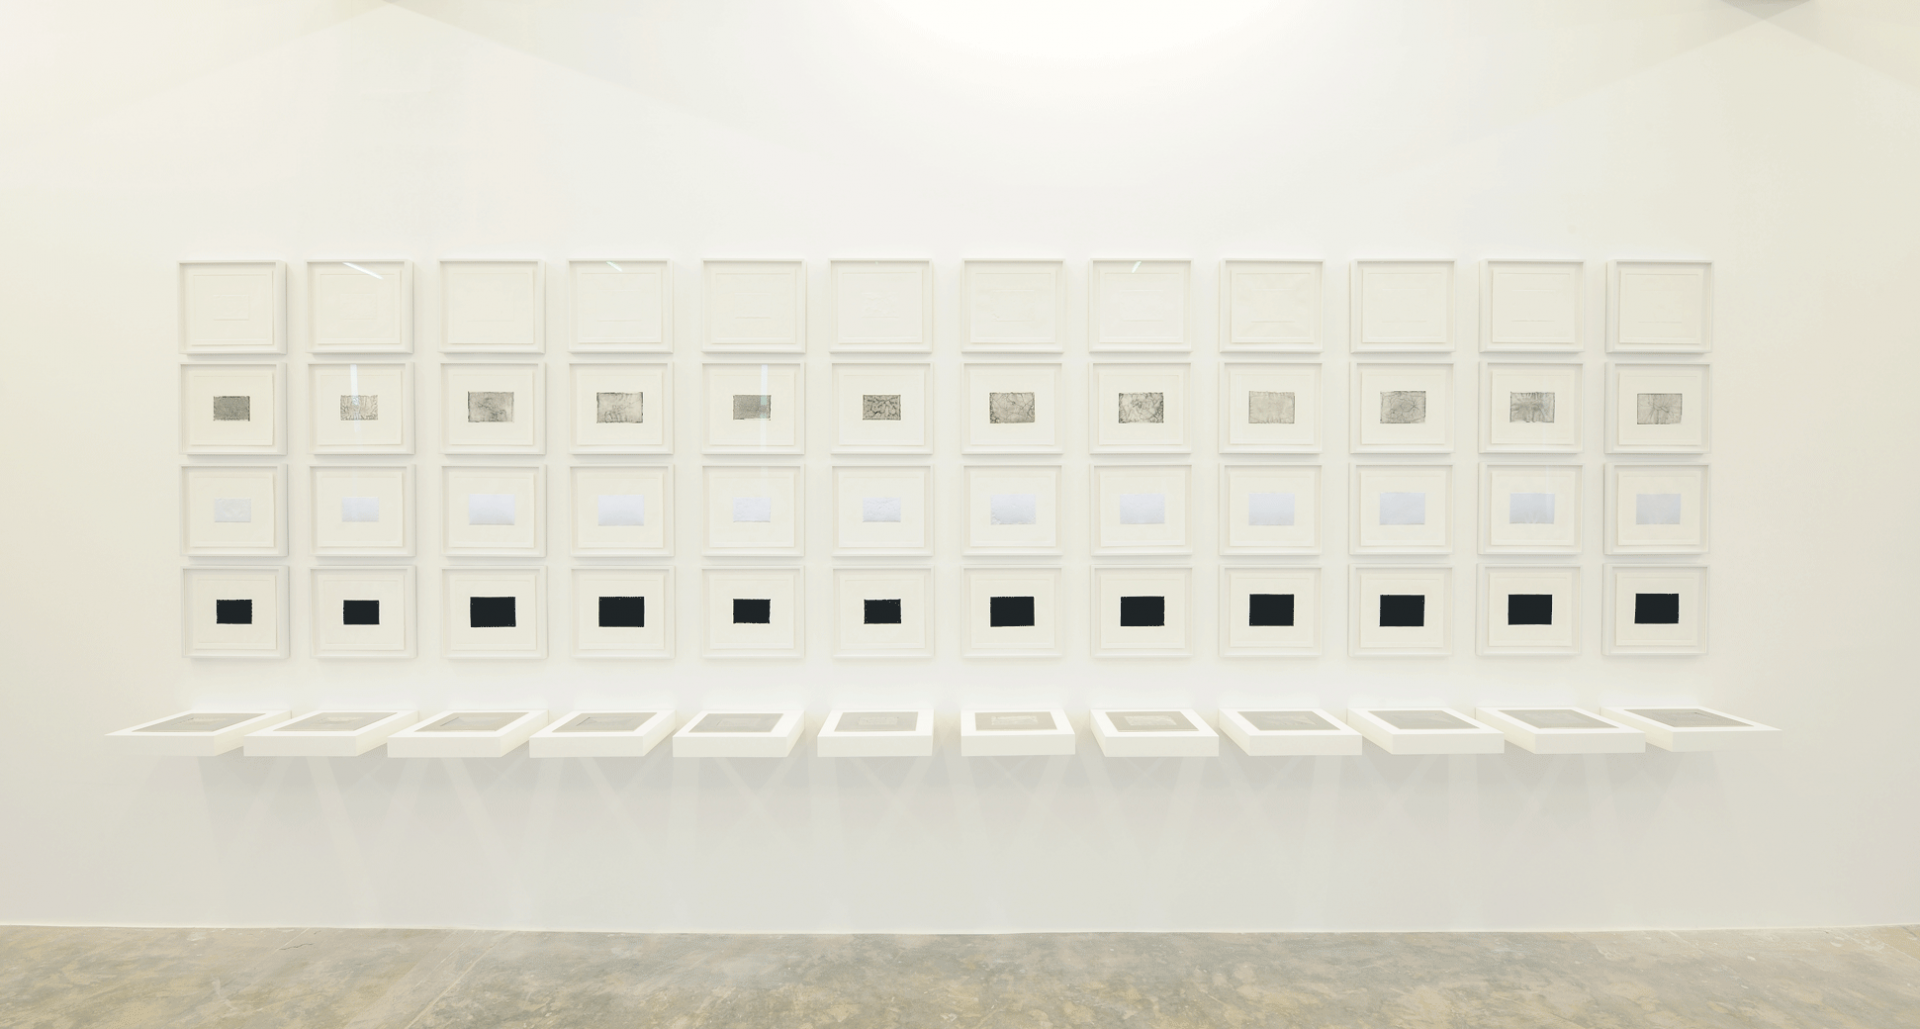 Against Photography, 2017, 12 Routed aluminum plates, 24 x 28 cm each, 4 Sets of intaglio and chine-collé prints, 27 x 31 cm each. Installation view Sfeir-Semler Gallery, Beirut